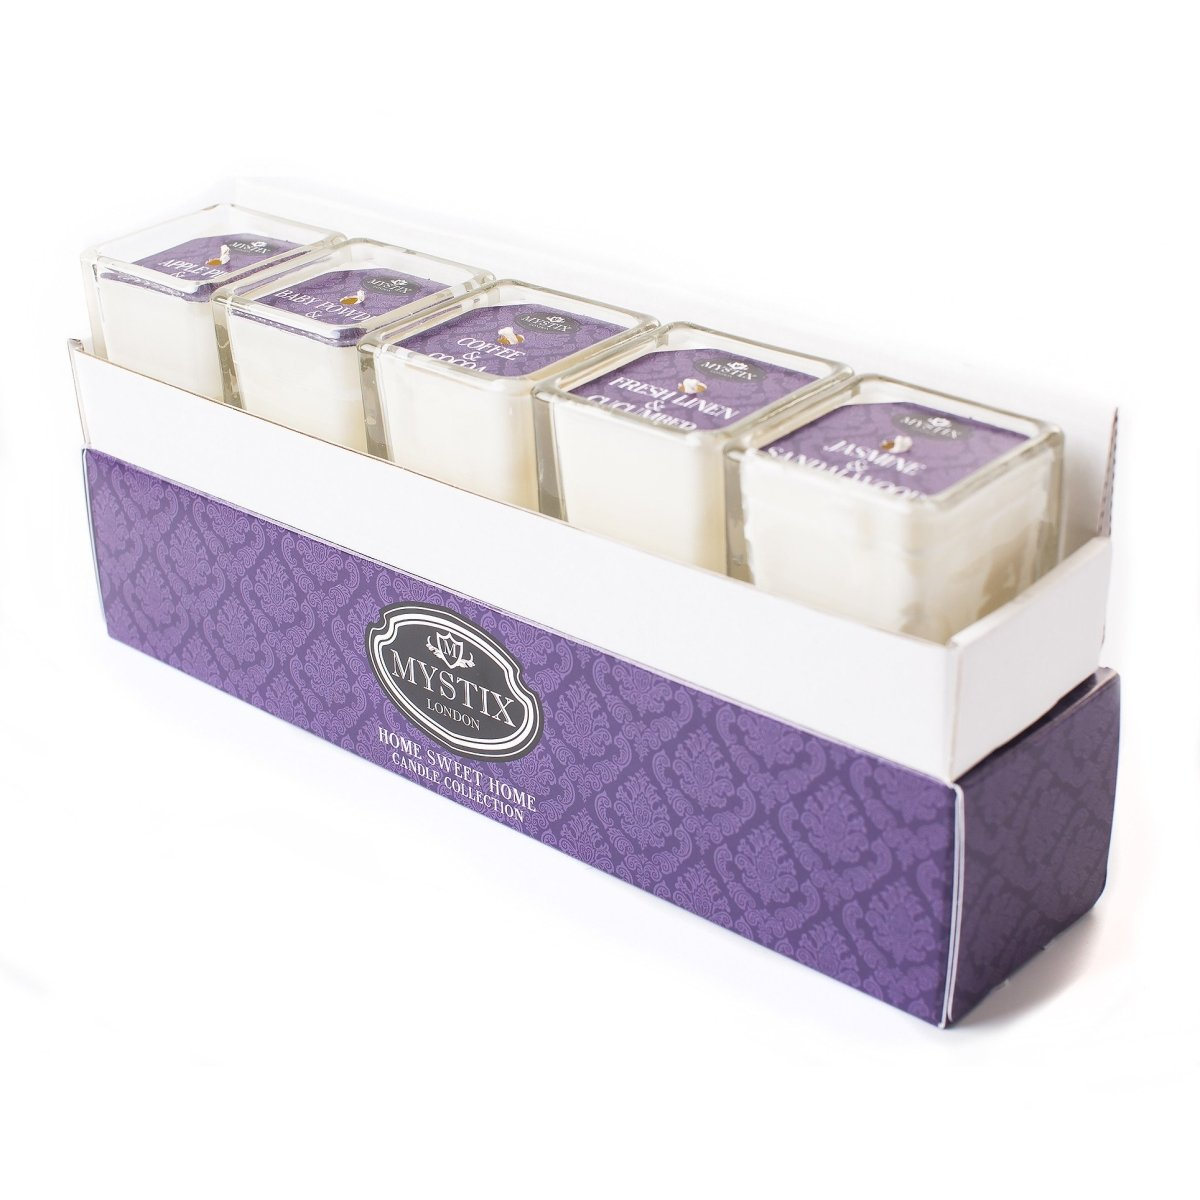 Home Sweet Home - Candle Collection Gift Set - Mystic Moments UK